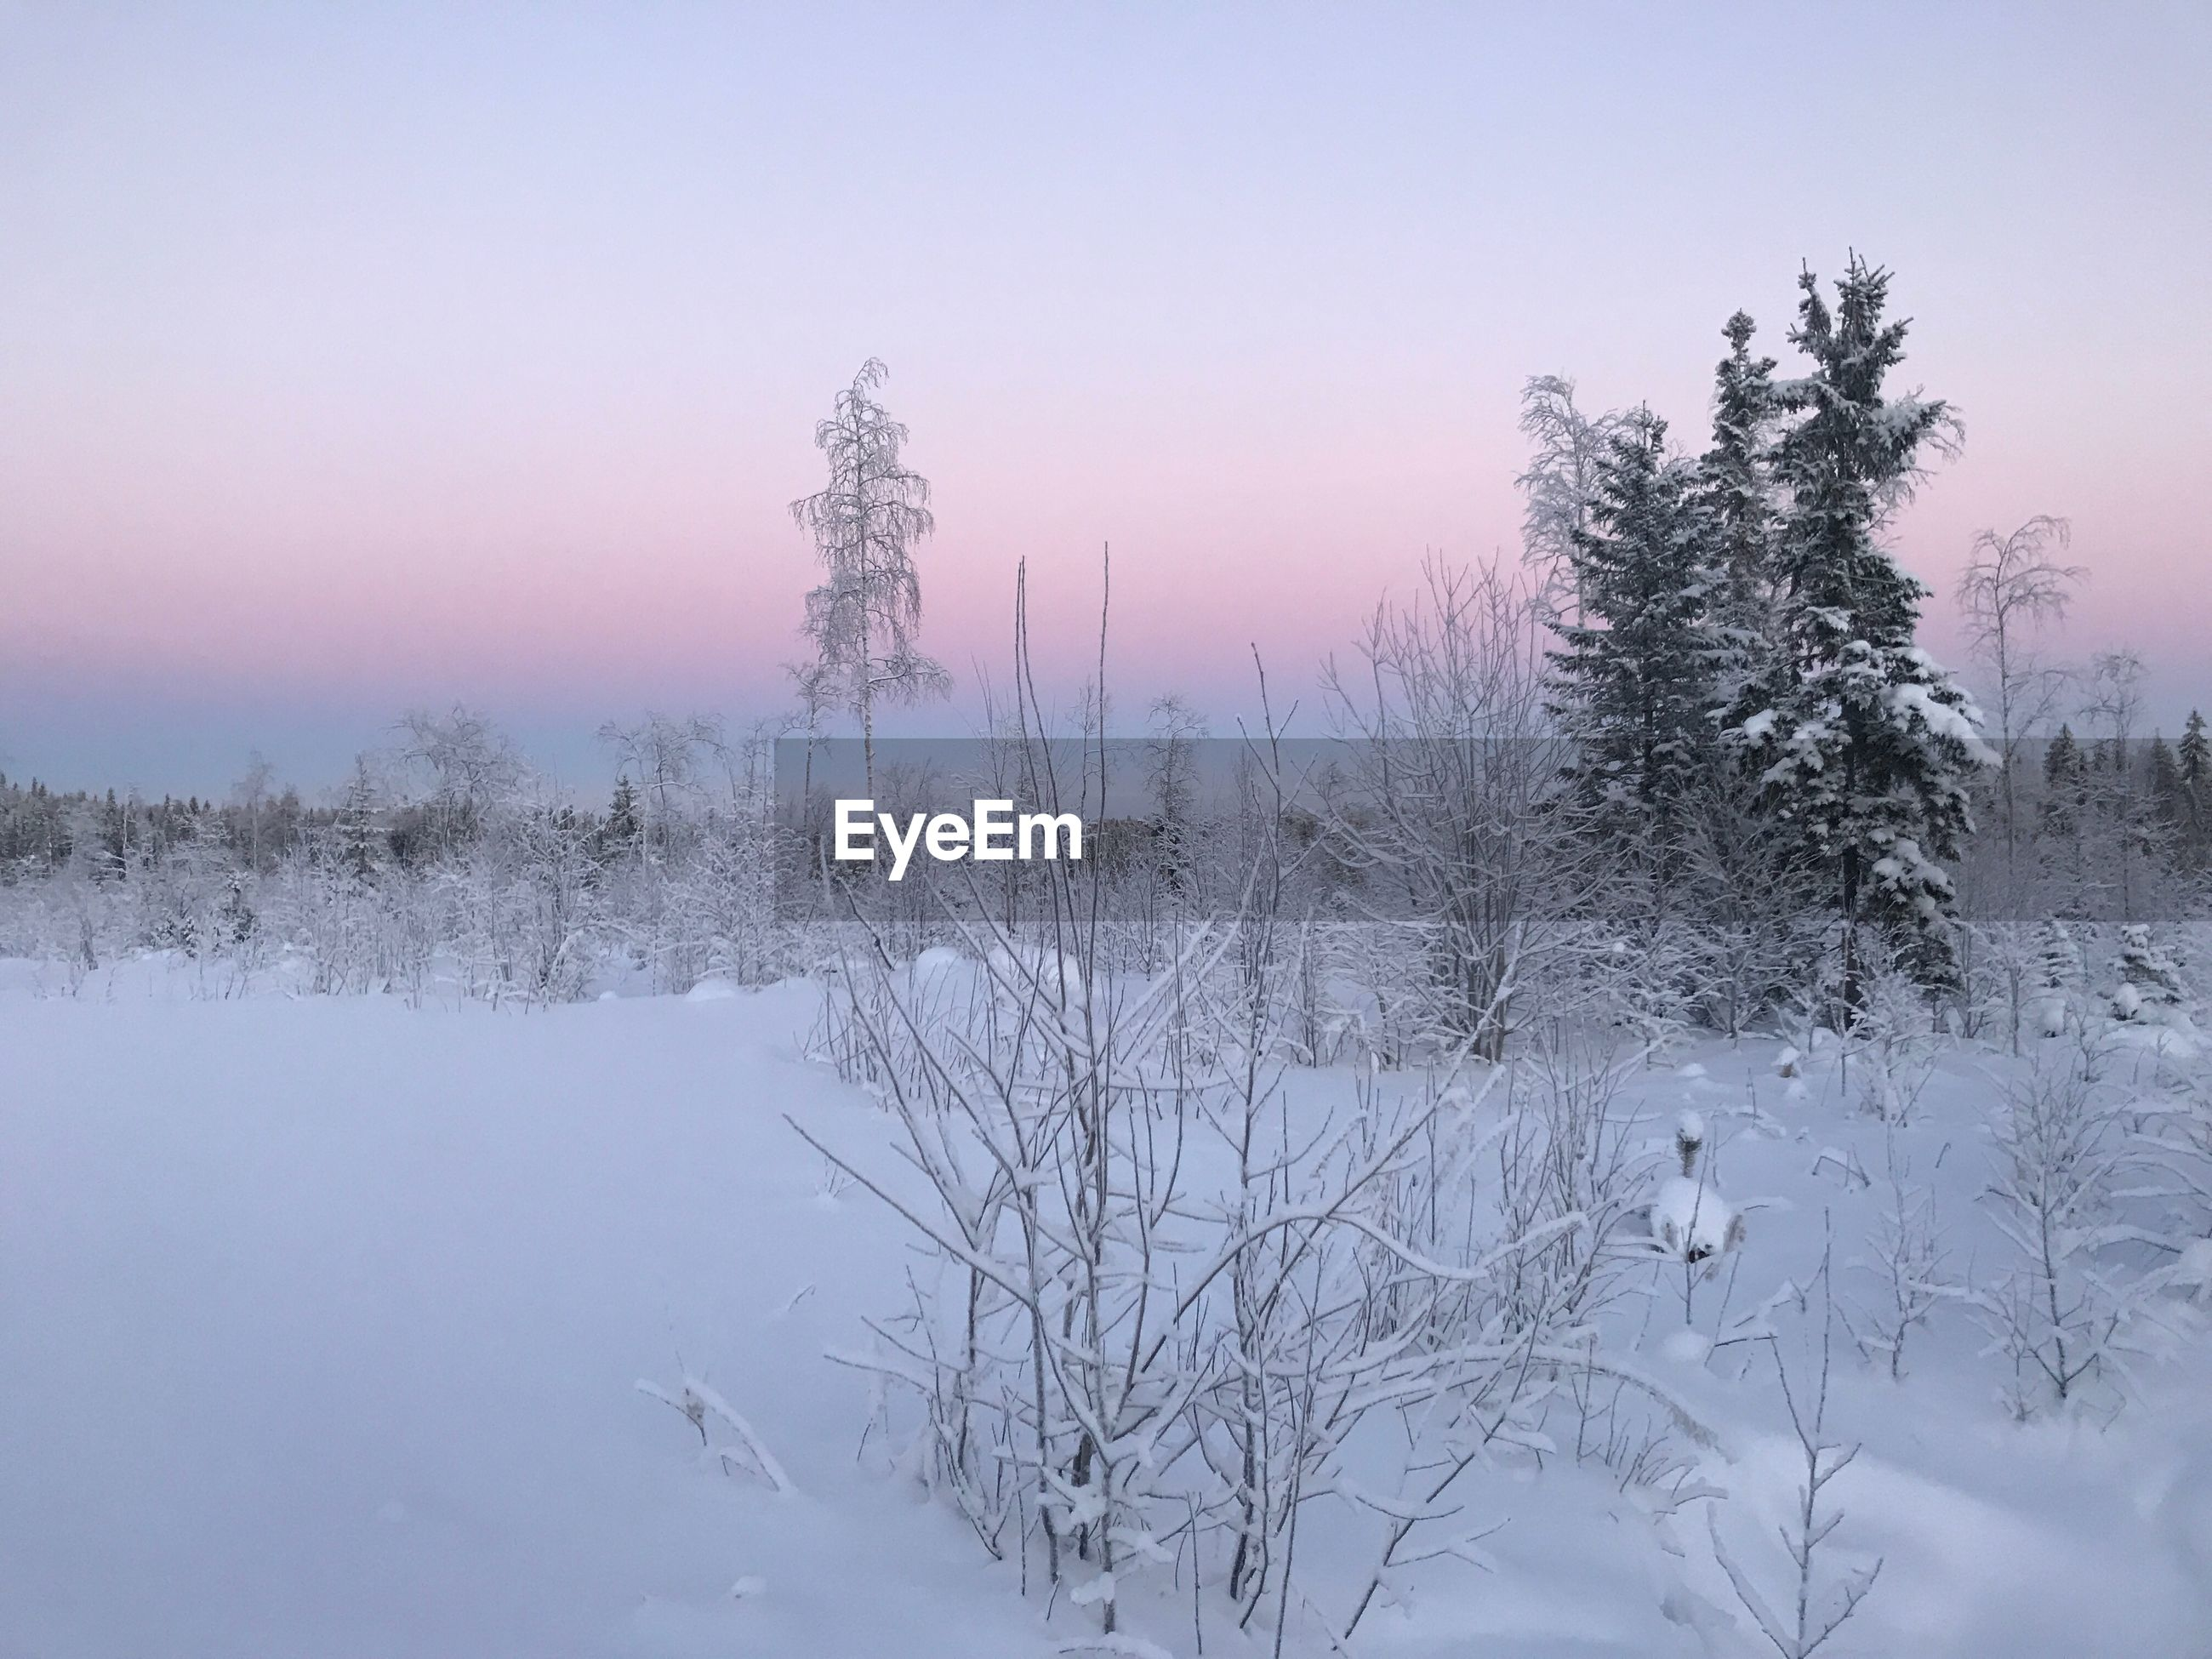 SNOW COVERED LAND AND TREES AGAINST SKY DURING WINTER